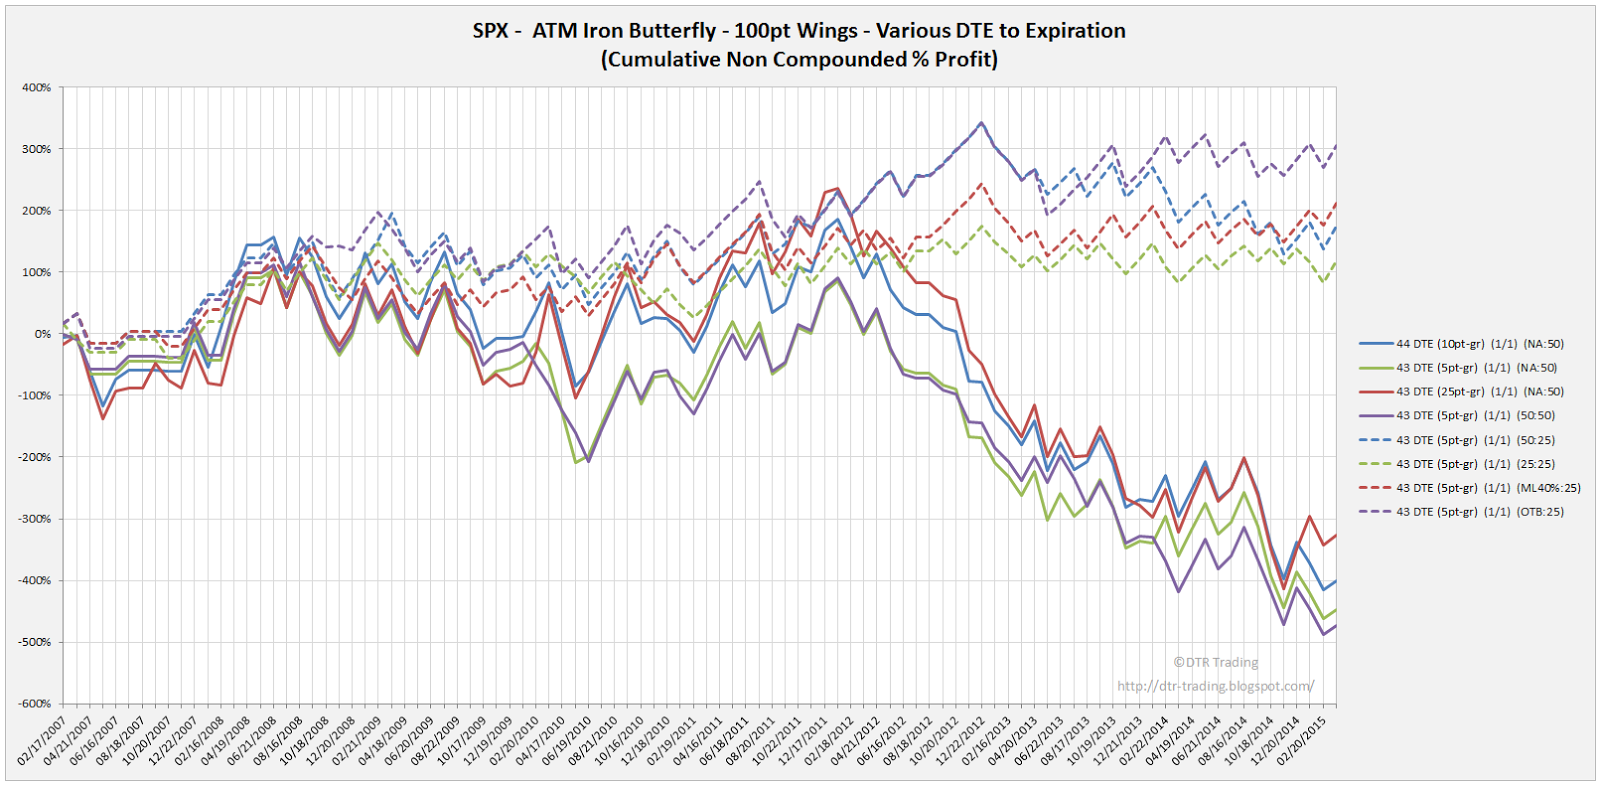 Iron Butterfly Dynamic Exit Equity Curves SPX 43 DTE 100 Point Wing Widths